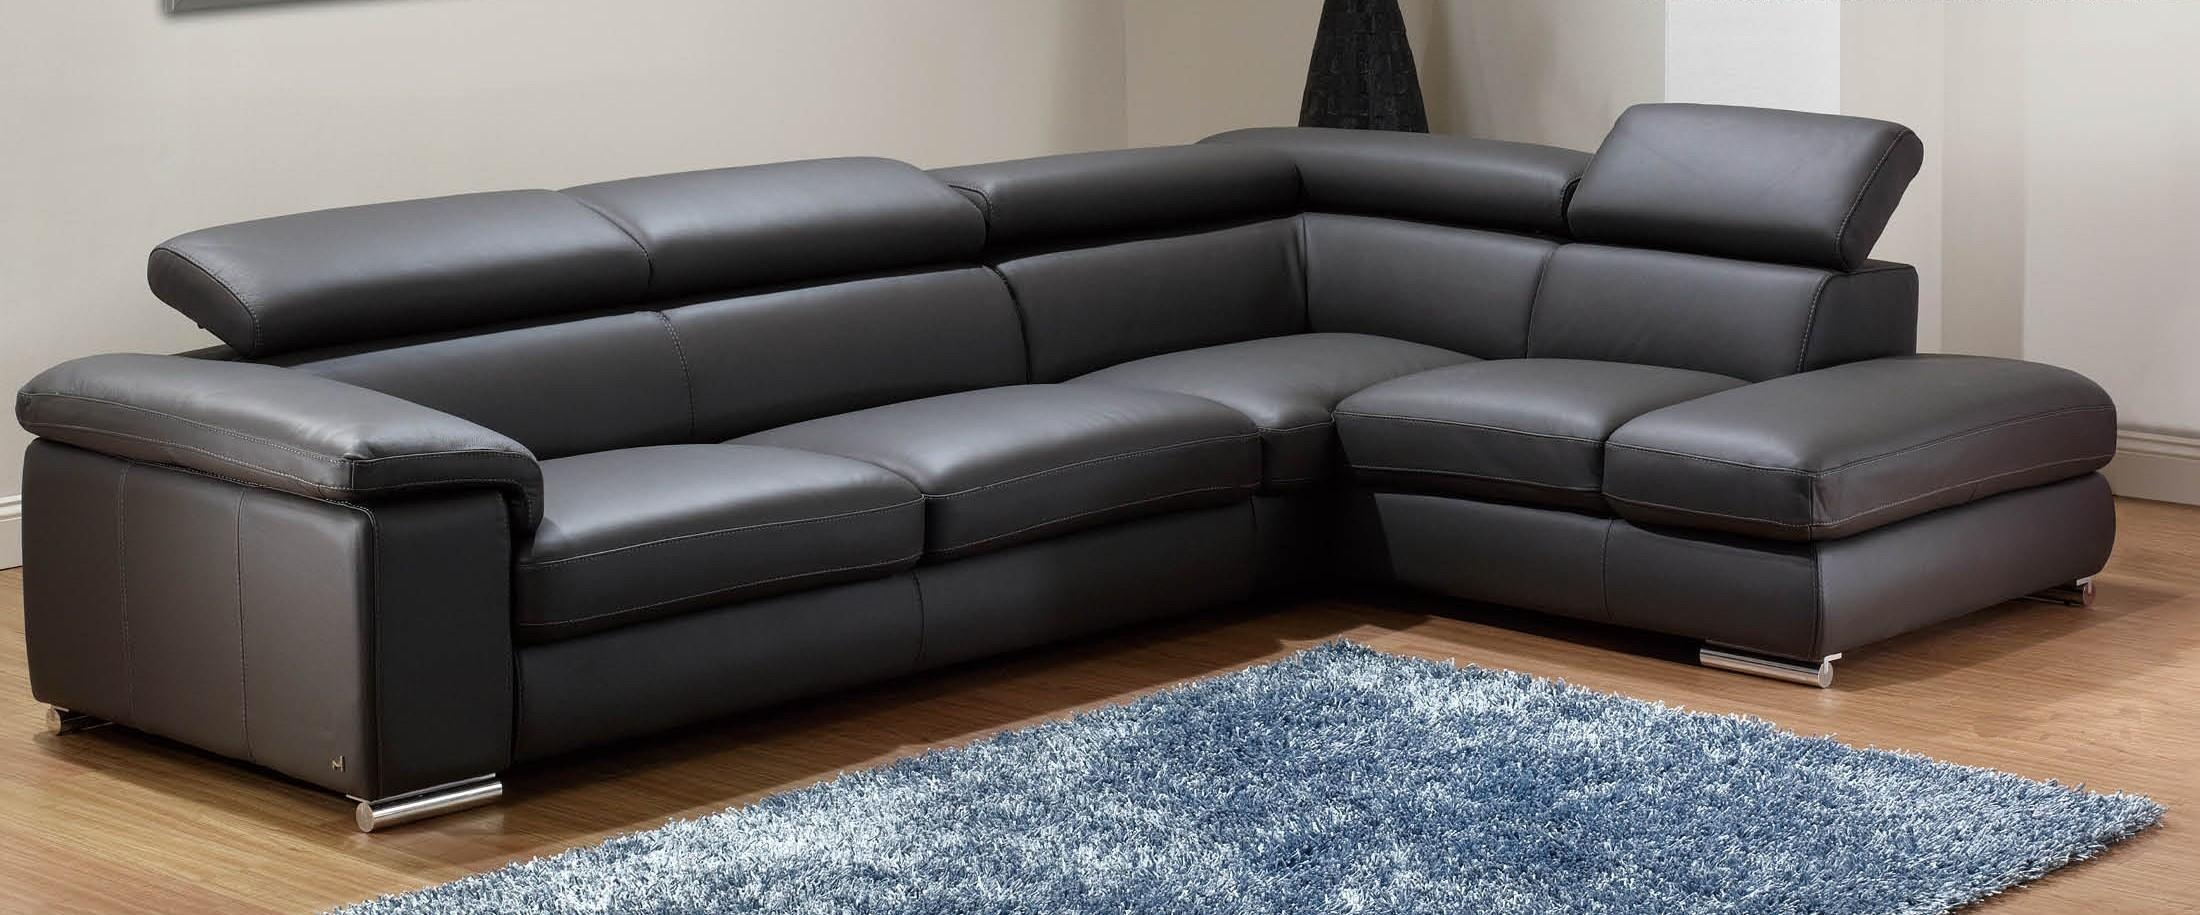 Modern Leather Sectional Recliner – Creditrestore Intended For Black Leather Chaise Sofas (View 2 of 20)